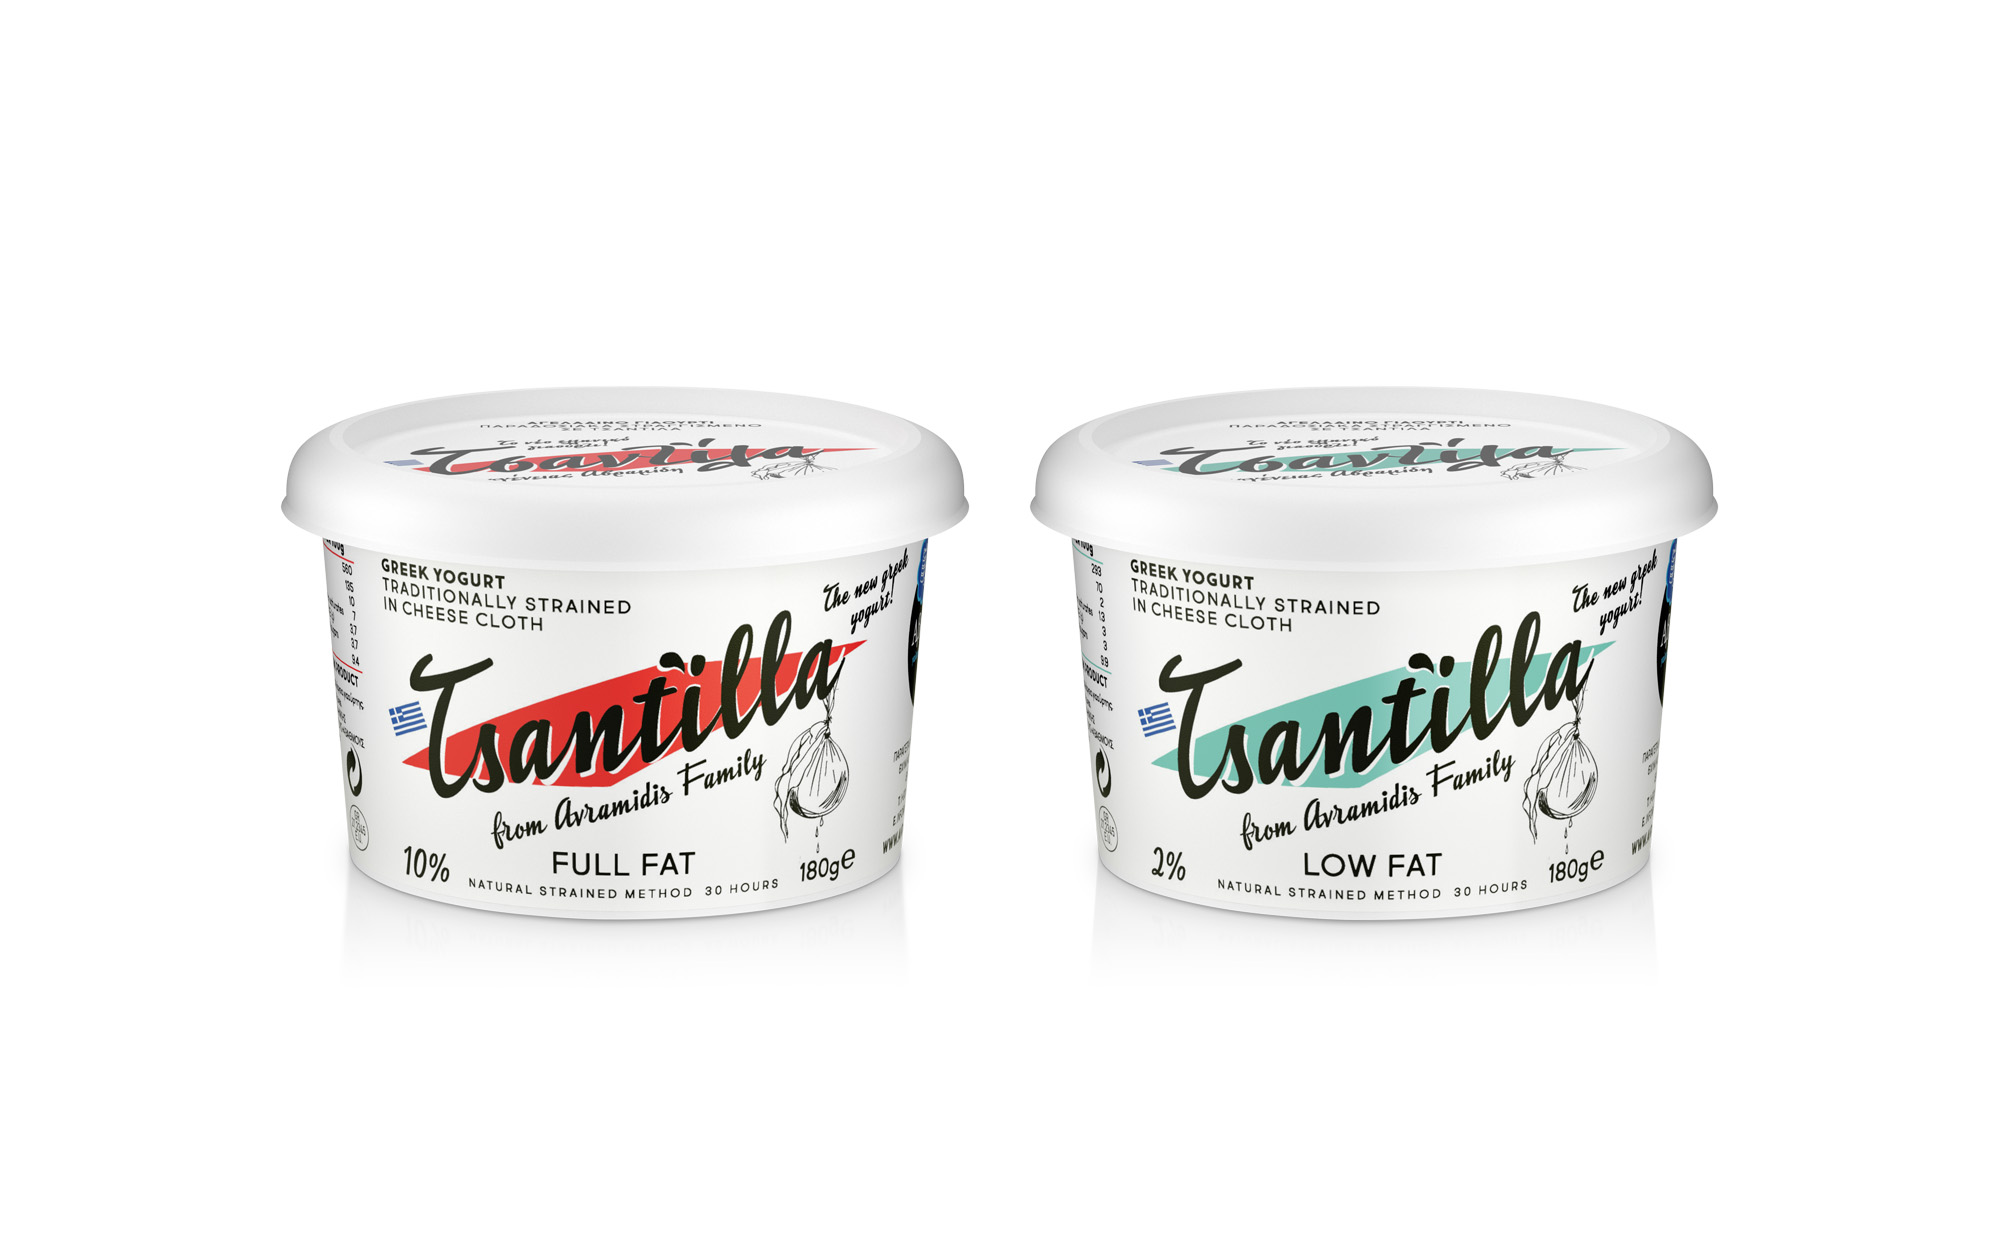 Sophia Georgopoulou | Design - Avramidis Family Tsantilla Strained Yogurt2.jpg